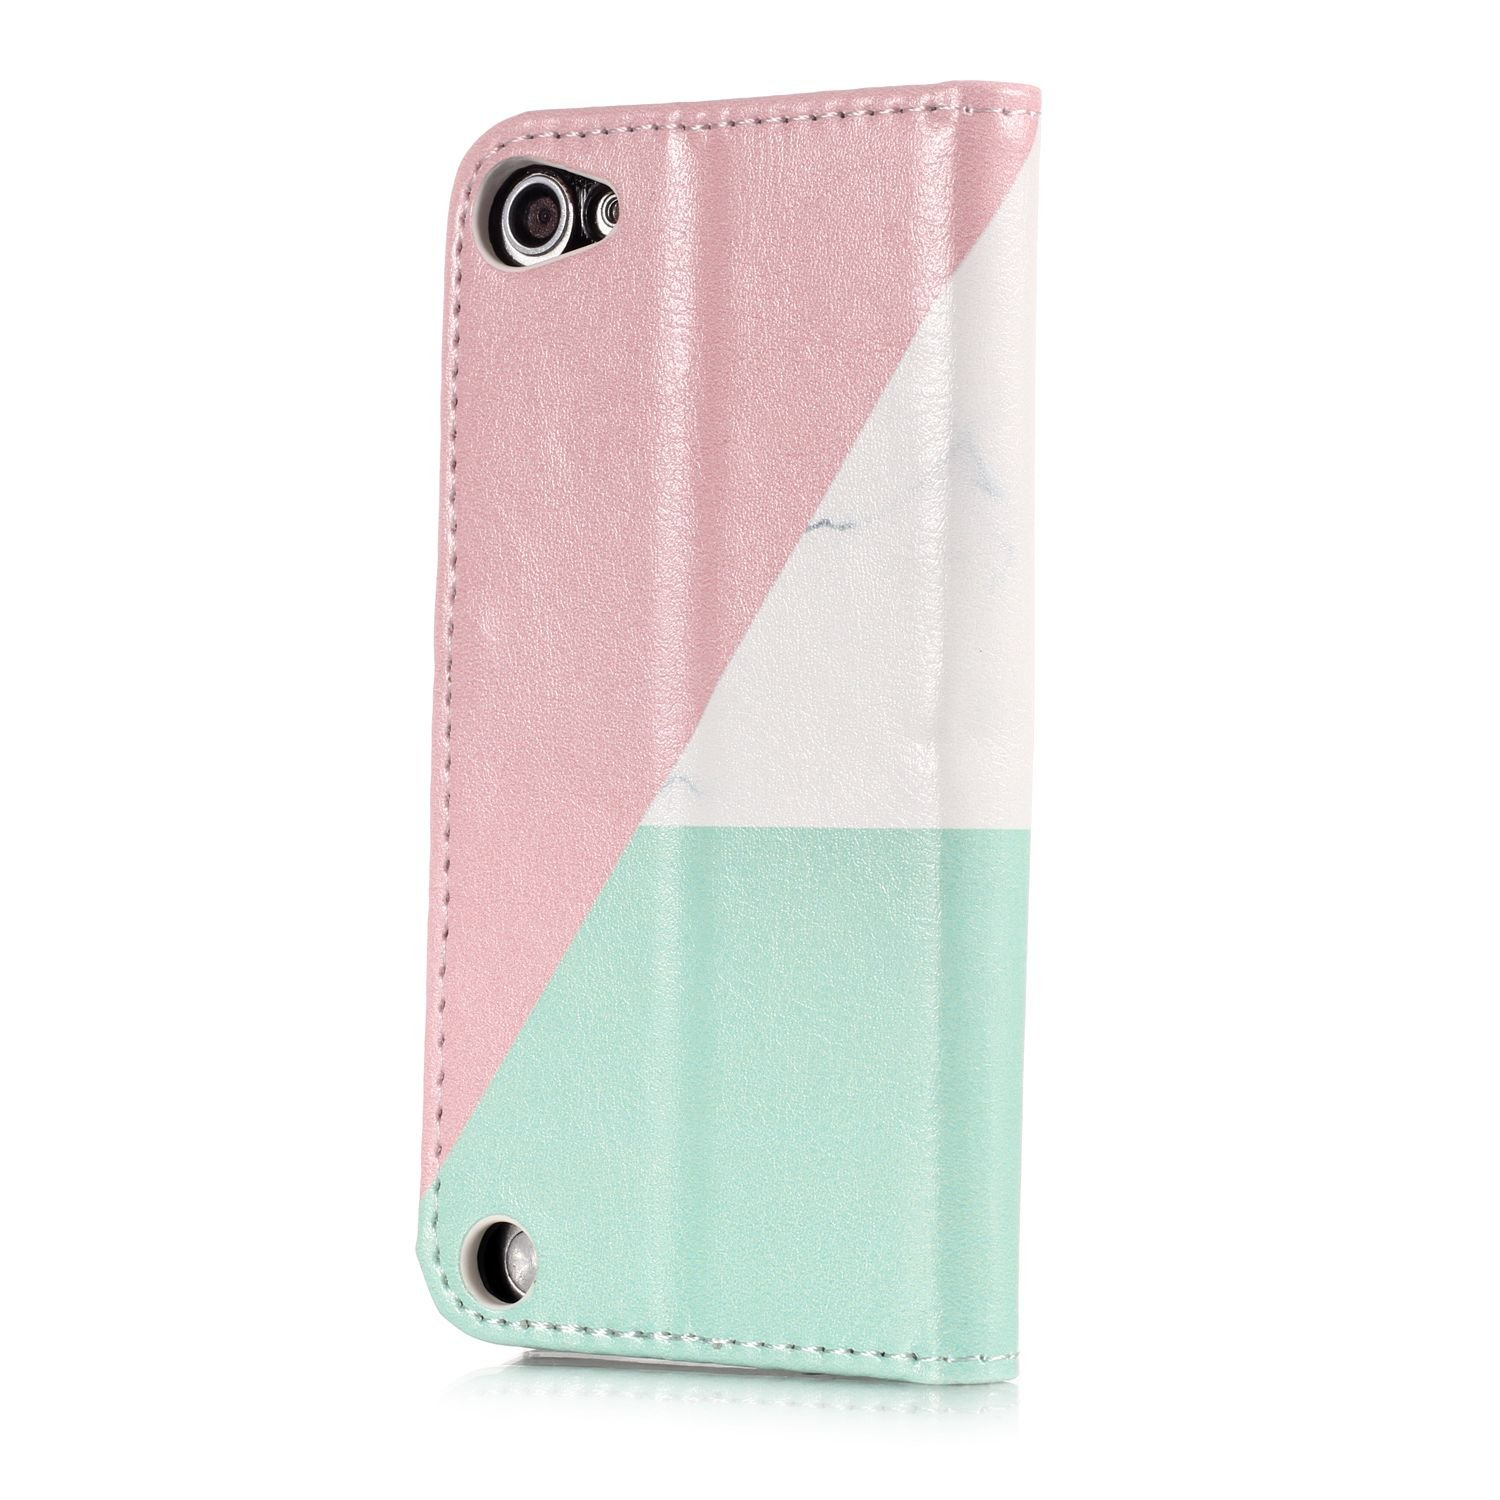 DAMONDY iPod Touch 5,iPod Touch 6, Shiny Marble Cute Pattern Wallet Purse Credit Card ID Holders Design Flip Leather Cover TPU Soft Bumper Kickstand Magnetic for Apple iPod touch 5 6th-bad dog